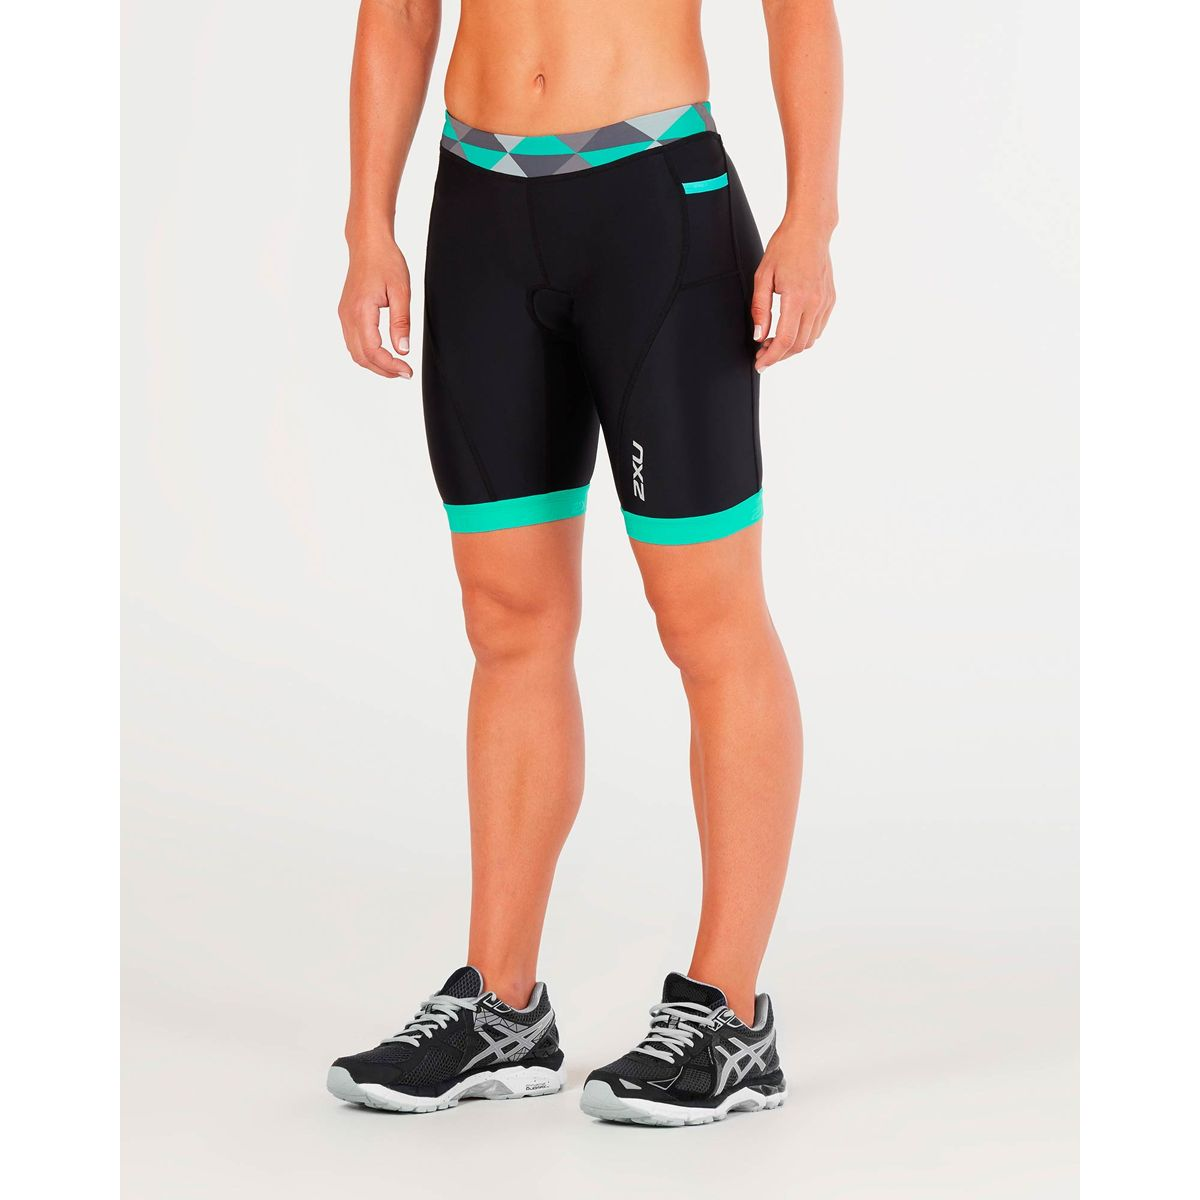 ACTIVE TRI SHORT for women